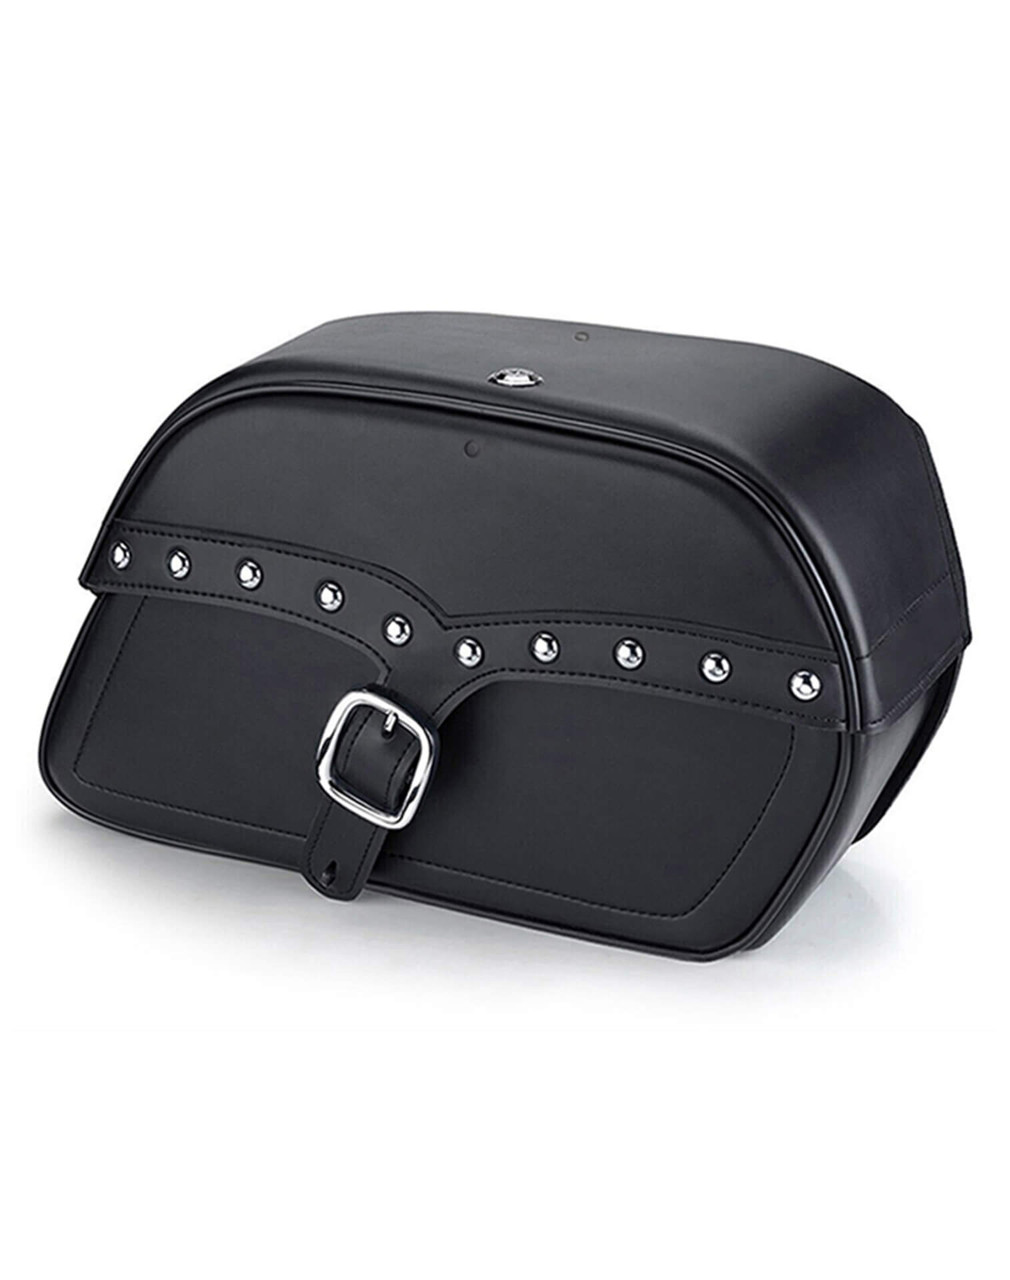 Viking SS Large Shock Cutout Slanted Studded Motorcycle Saddlebags For Harley Sportster Iron 1200 Bag view